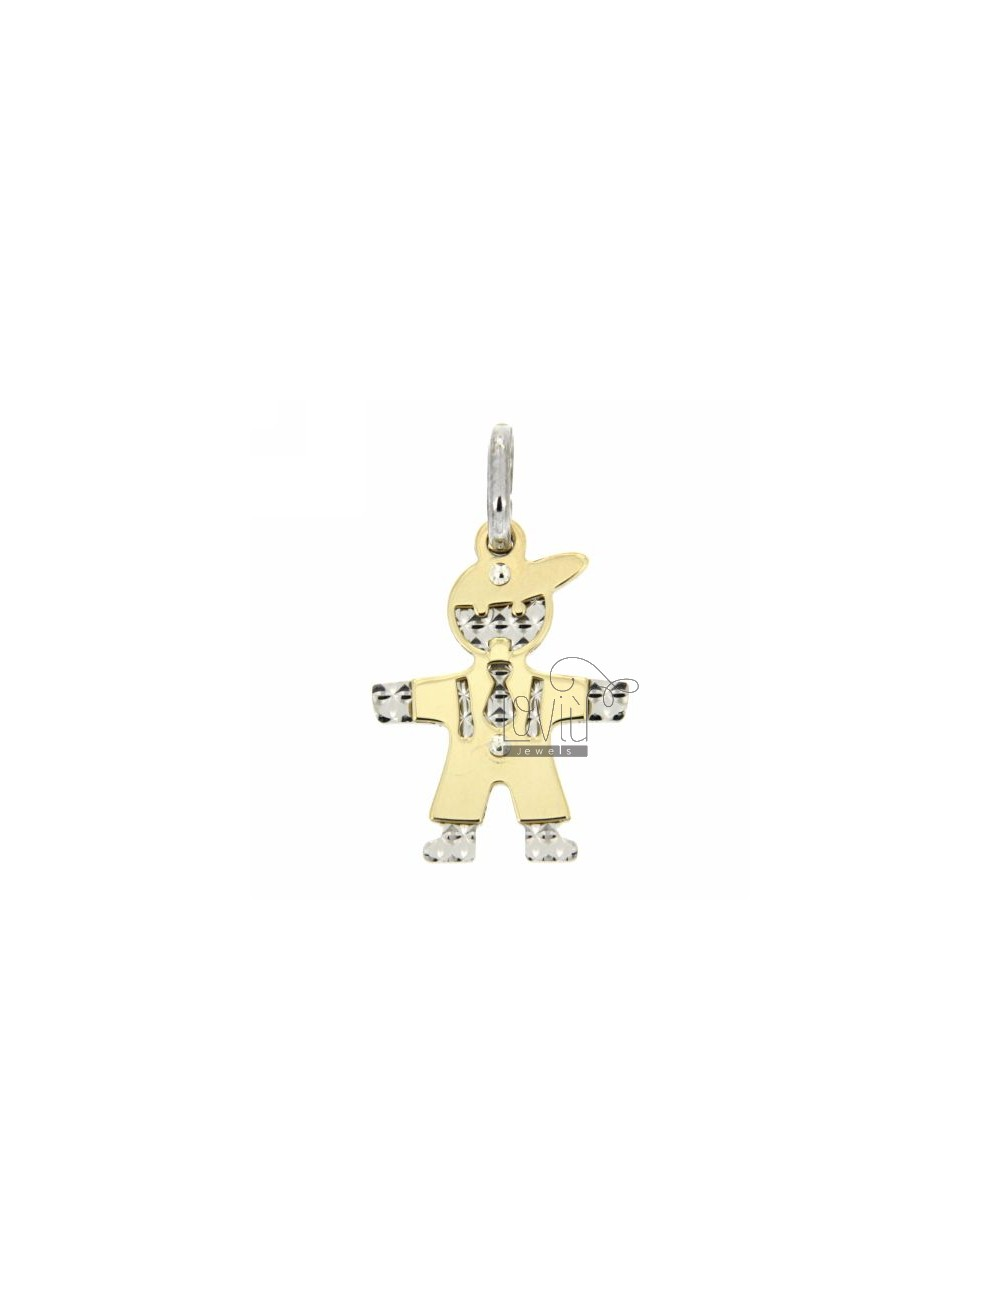 BIMB0 PENDANT GOLD PLATED AND FINISH DIAMOND SILVER 925